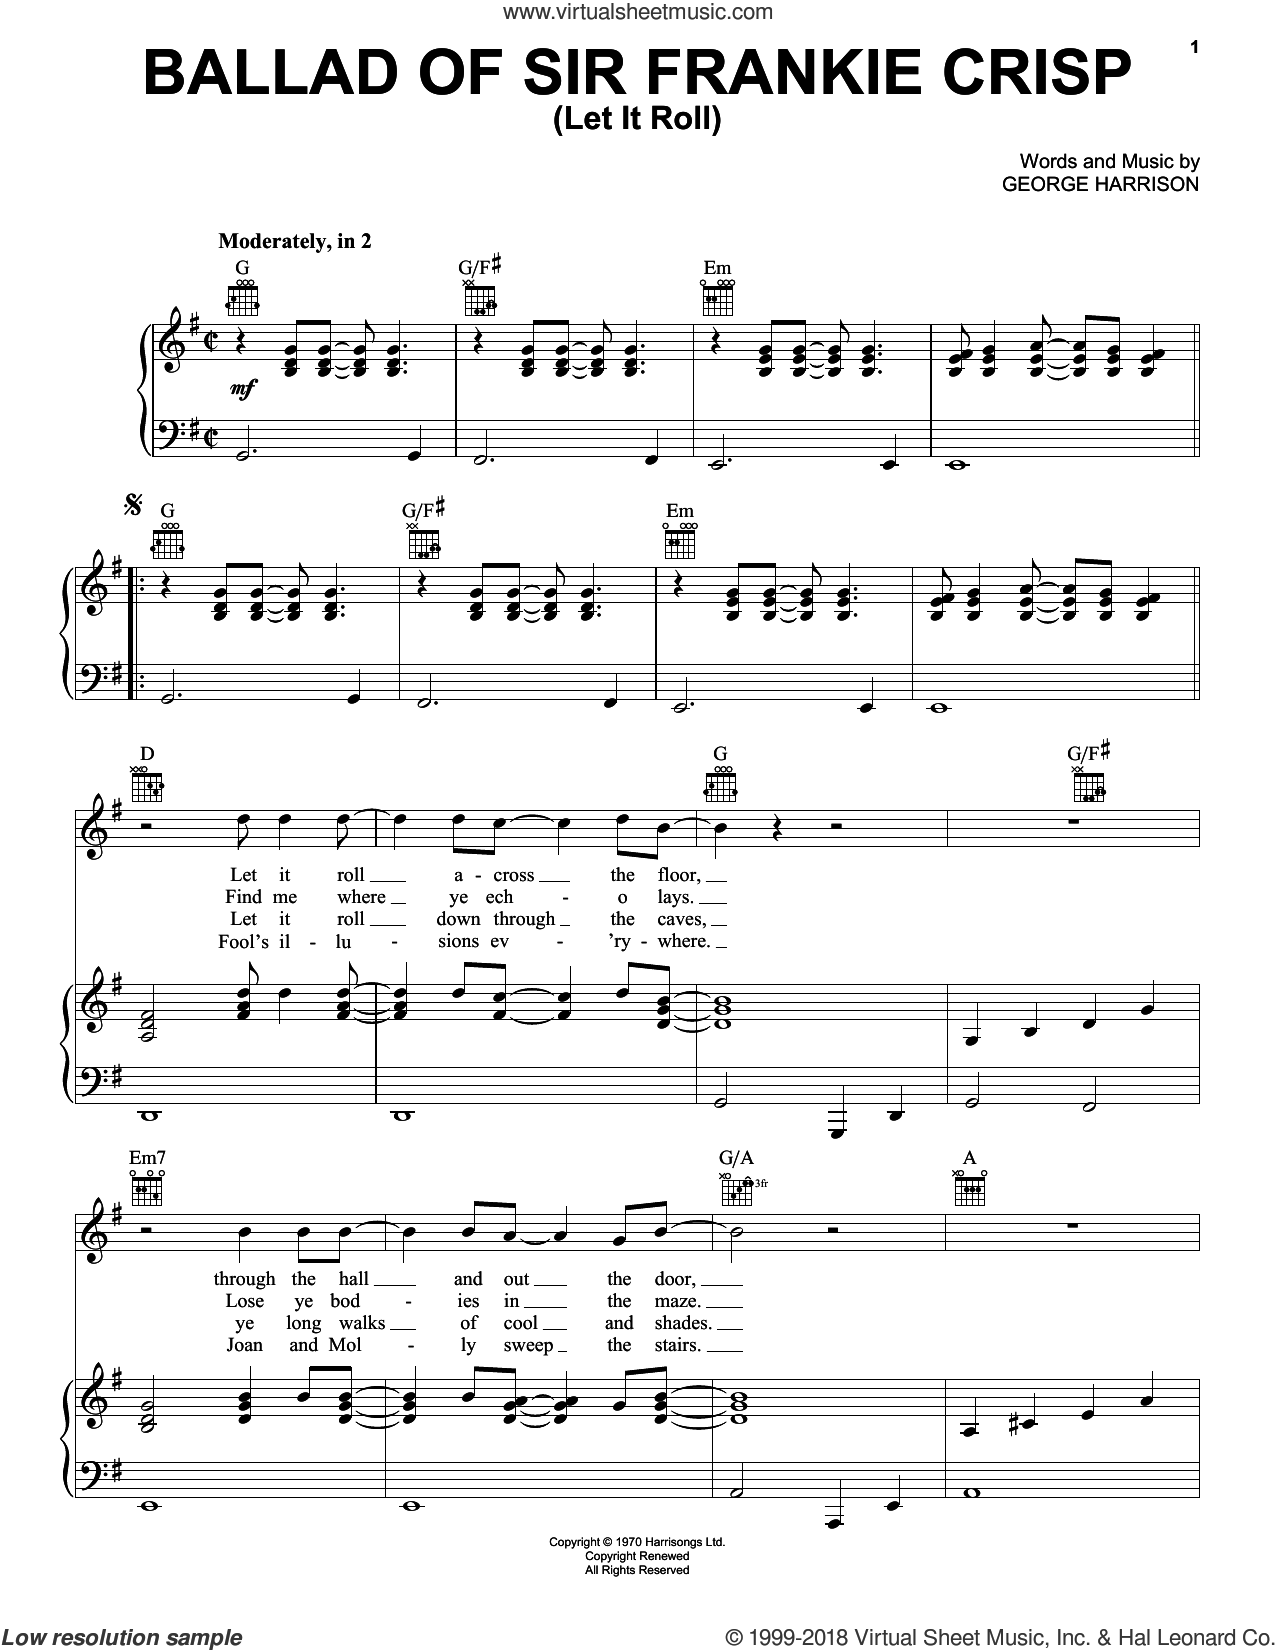 Ballad Of Sir Frankie Crisp (Let It Roll) sheet music for voice, piano or guitar by George Harrison, intermediate skill level